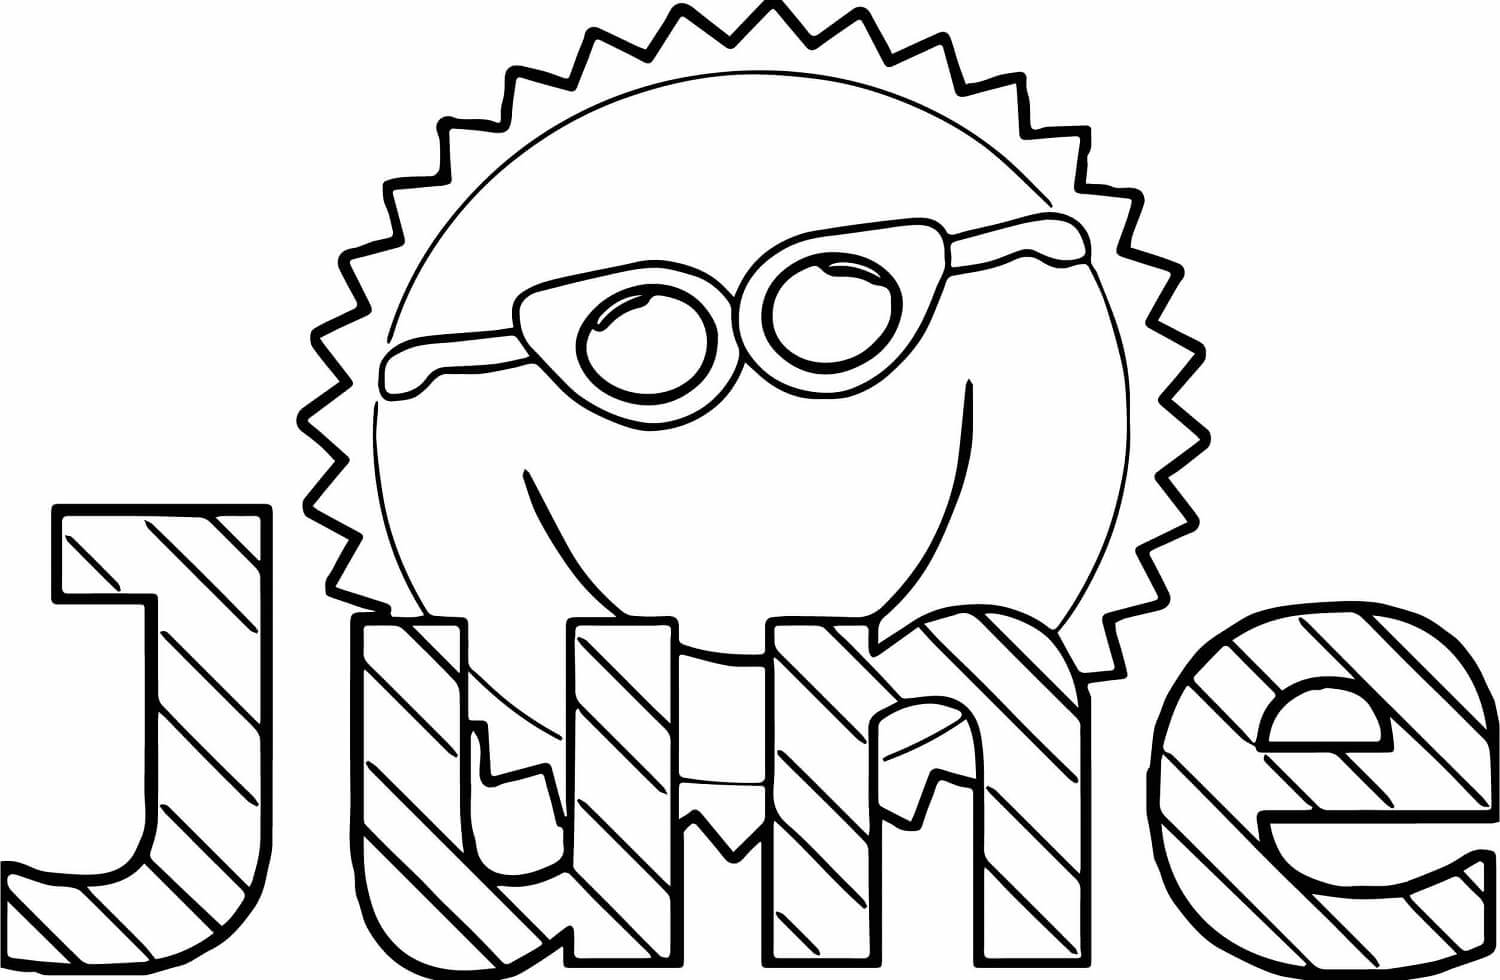 june coloring pages - 15 free june coloring pages to print